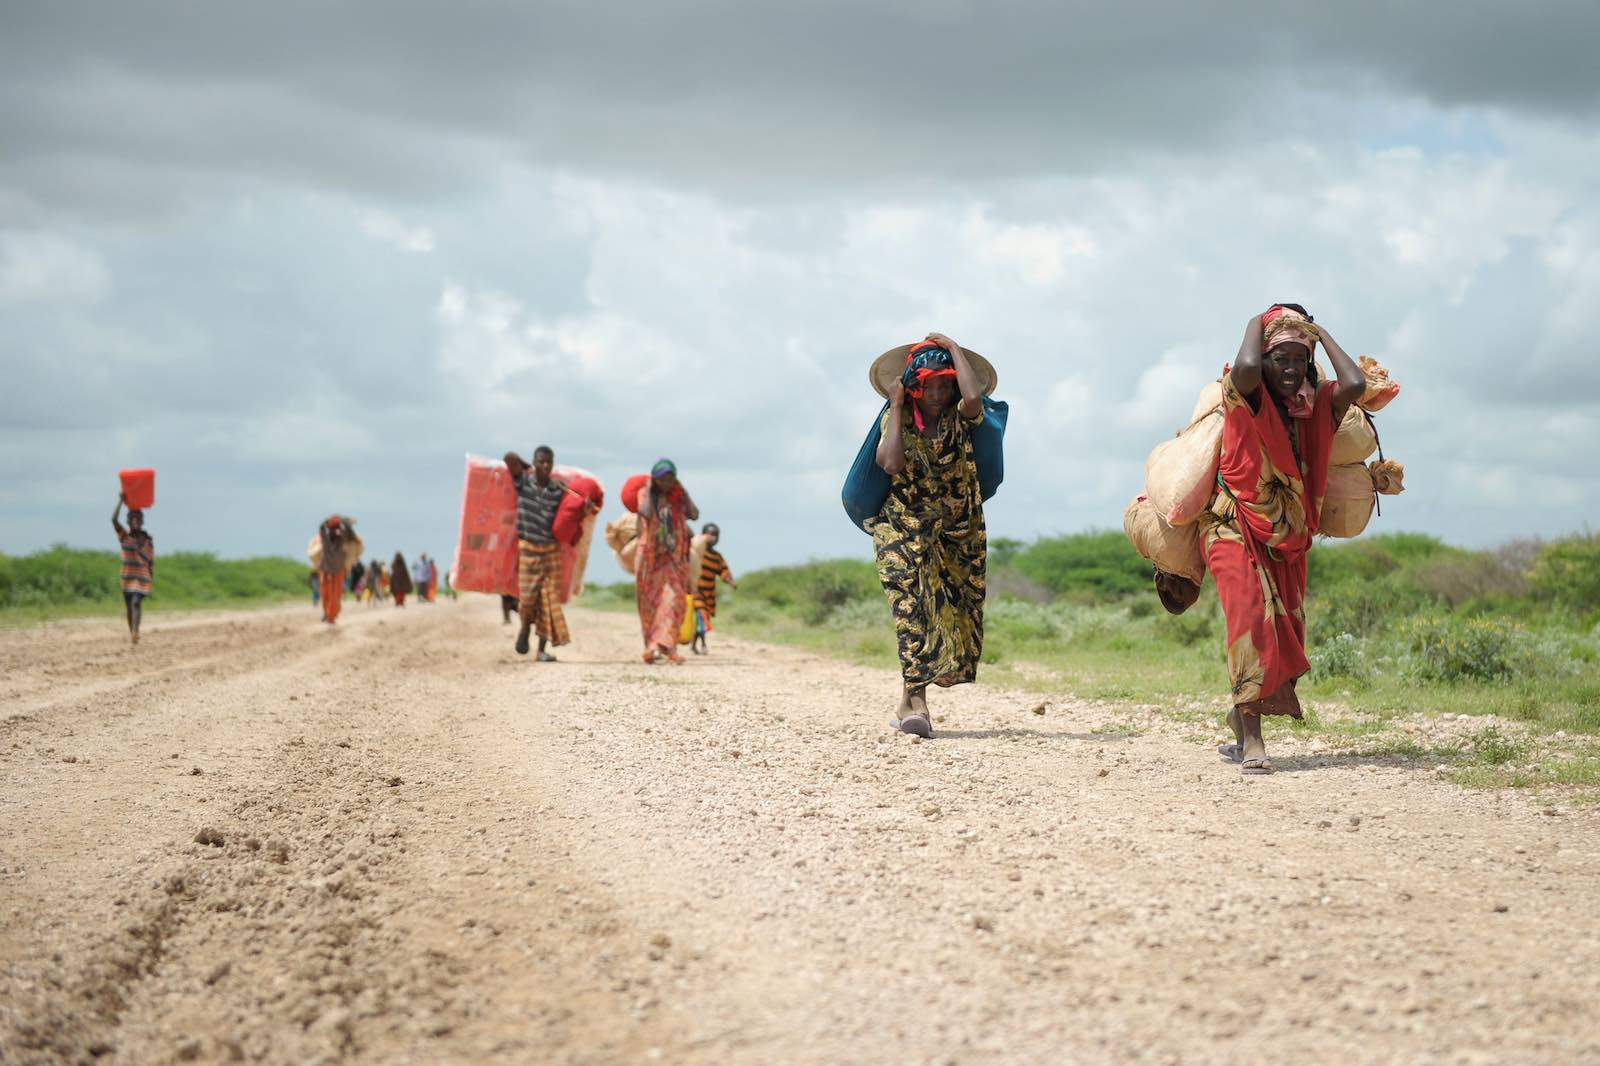 Women arrive at a camp for internally displaced people near Jowhar, Somalia, November 2013 (Tobin Jones/UN Photo/Flickr)